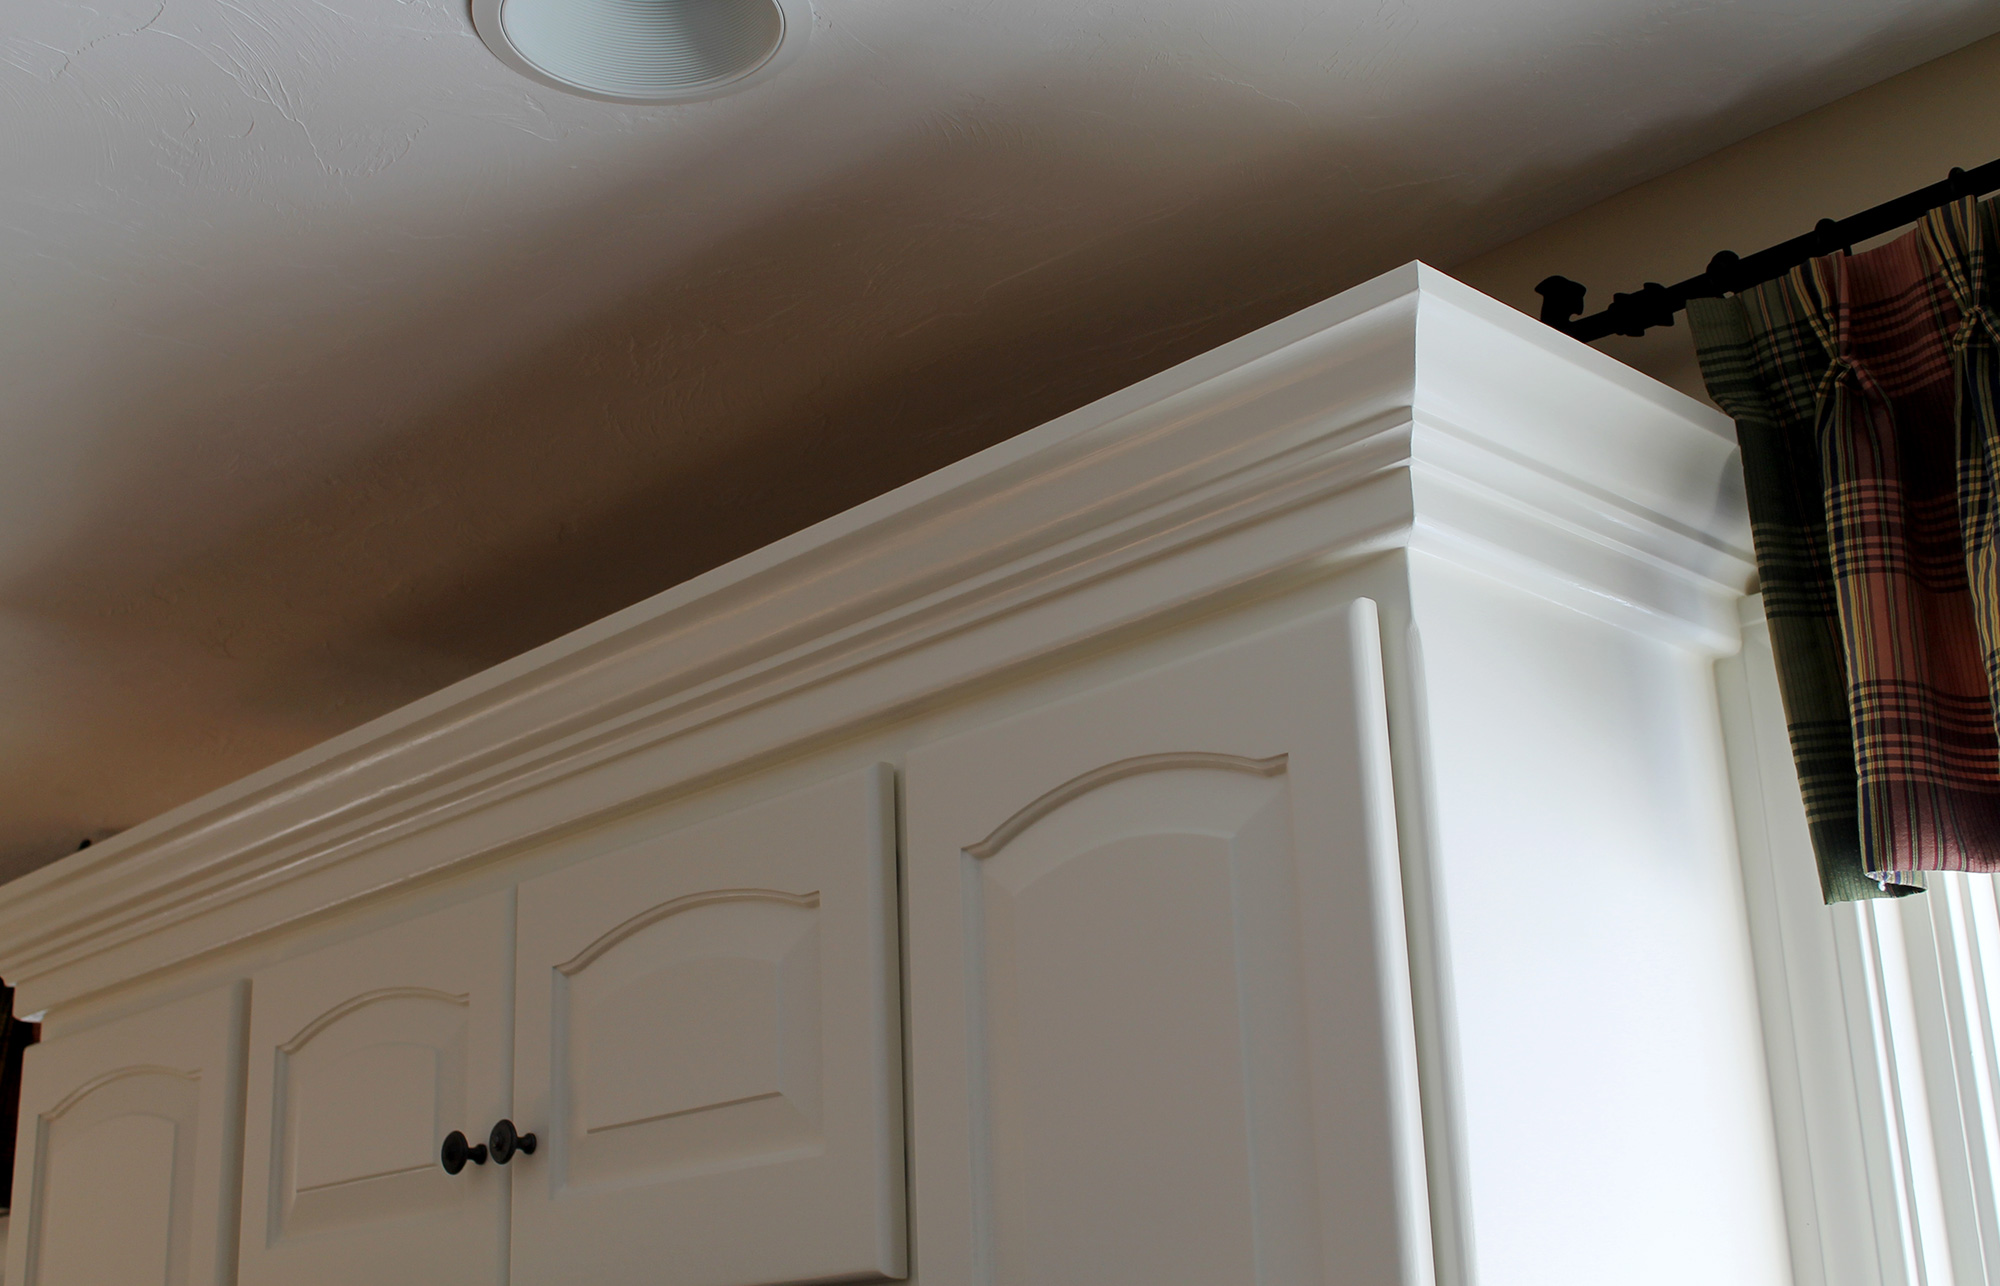 decorative molding kitchen cabinets black and white rug crown is a must hubley painting